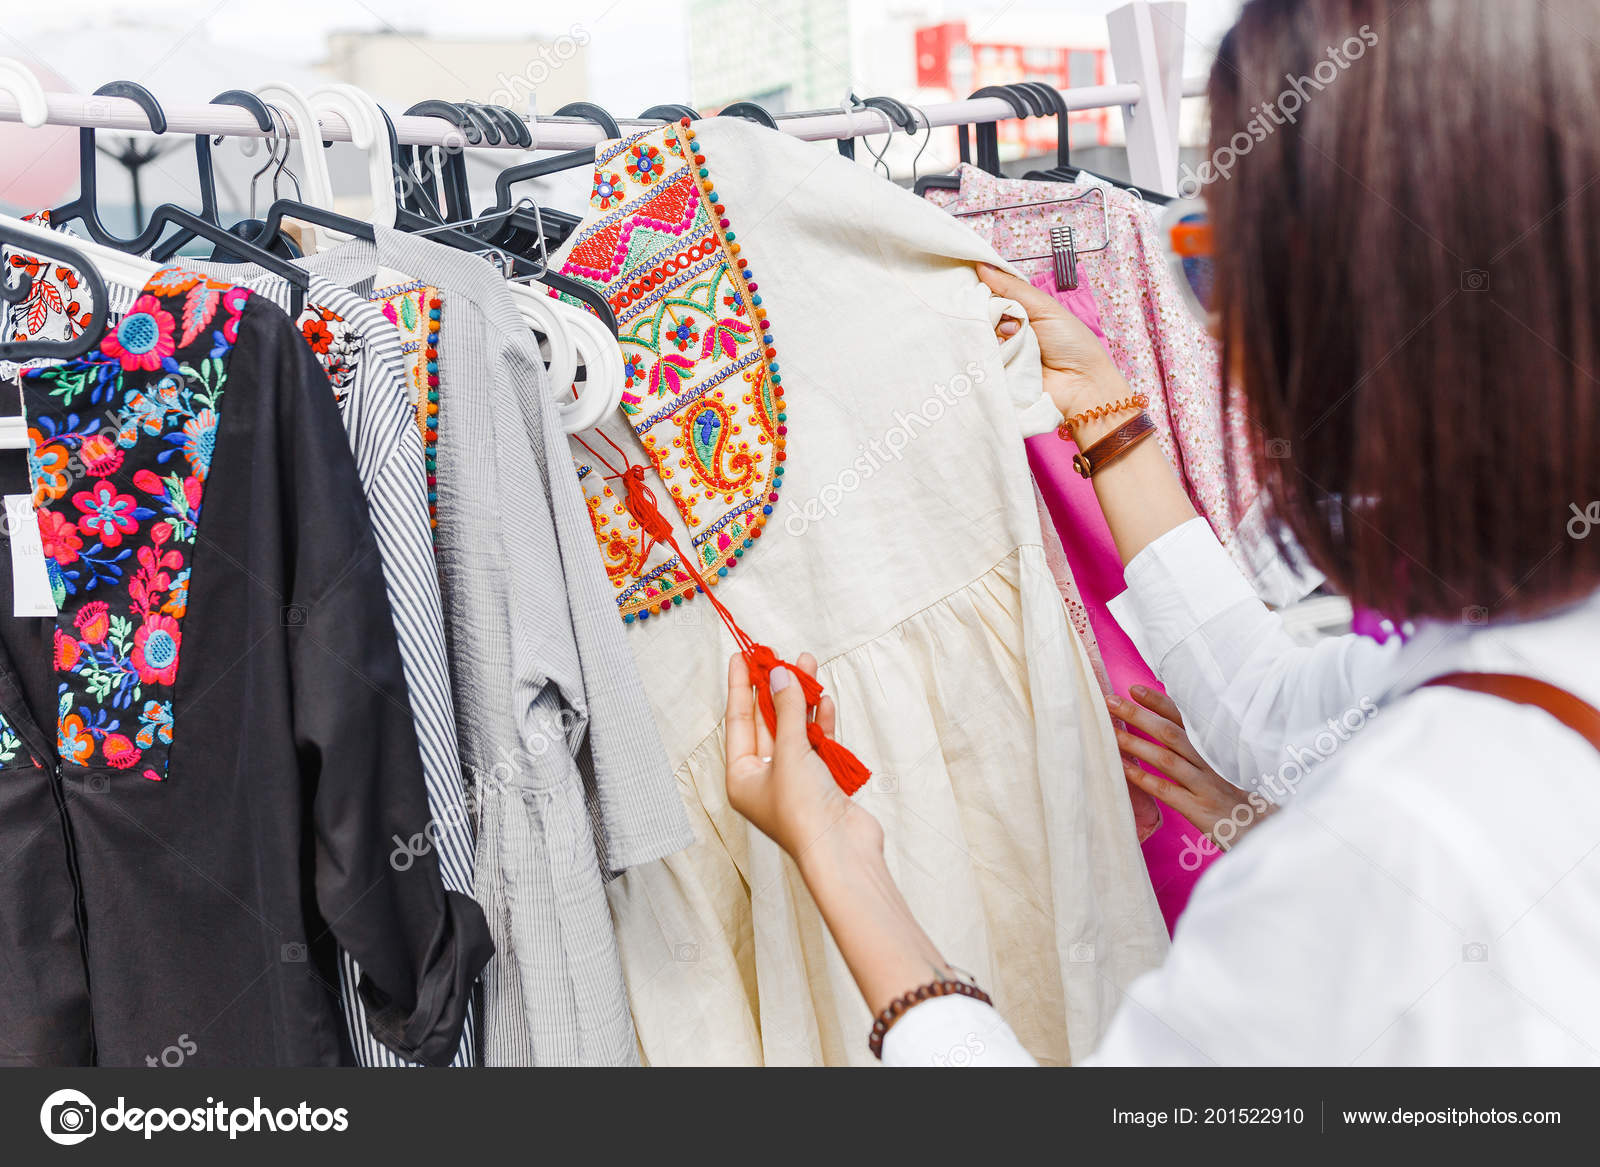 9a83ee54f29165 Bunte Folklore Kleidung Shop — Stockfoto © frantic00 #201522910